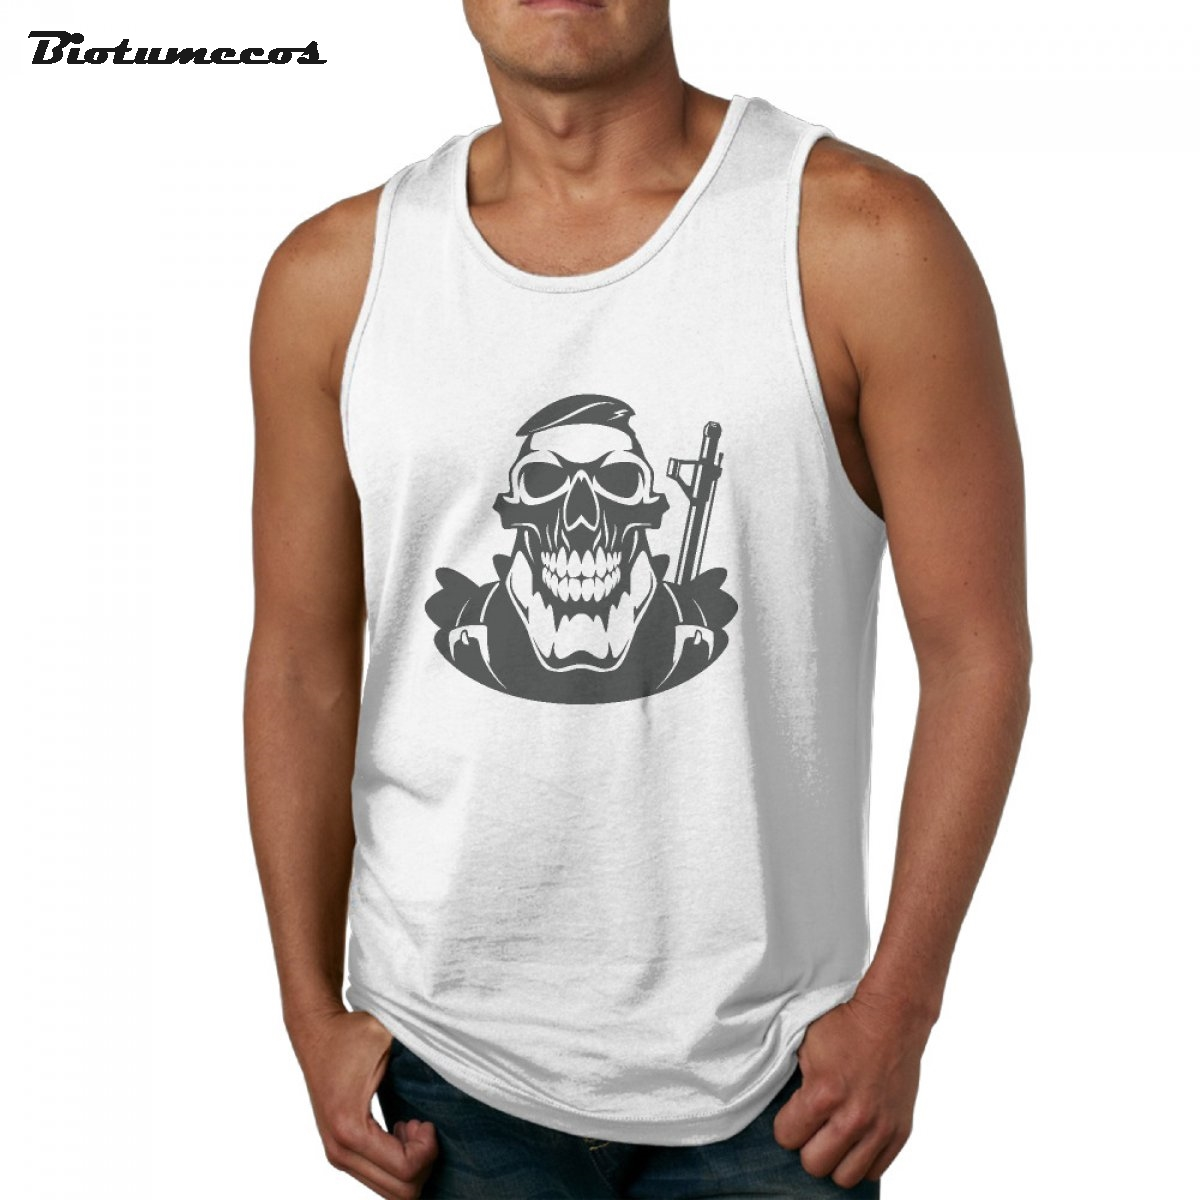 Newest Summer Men Tank Tops Skeleton Warrior Printed Male Retro Style Casual Cotton Vest MBXKL009